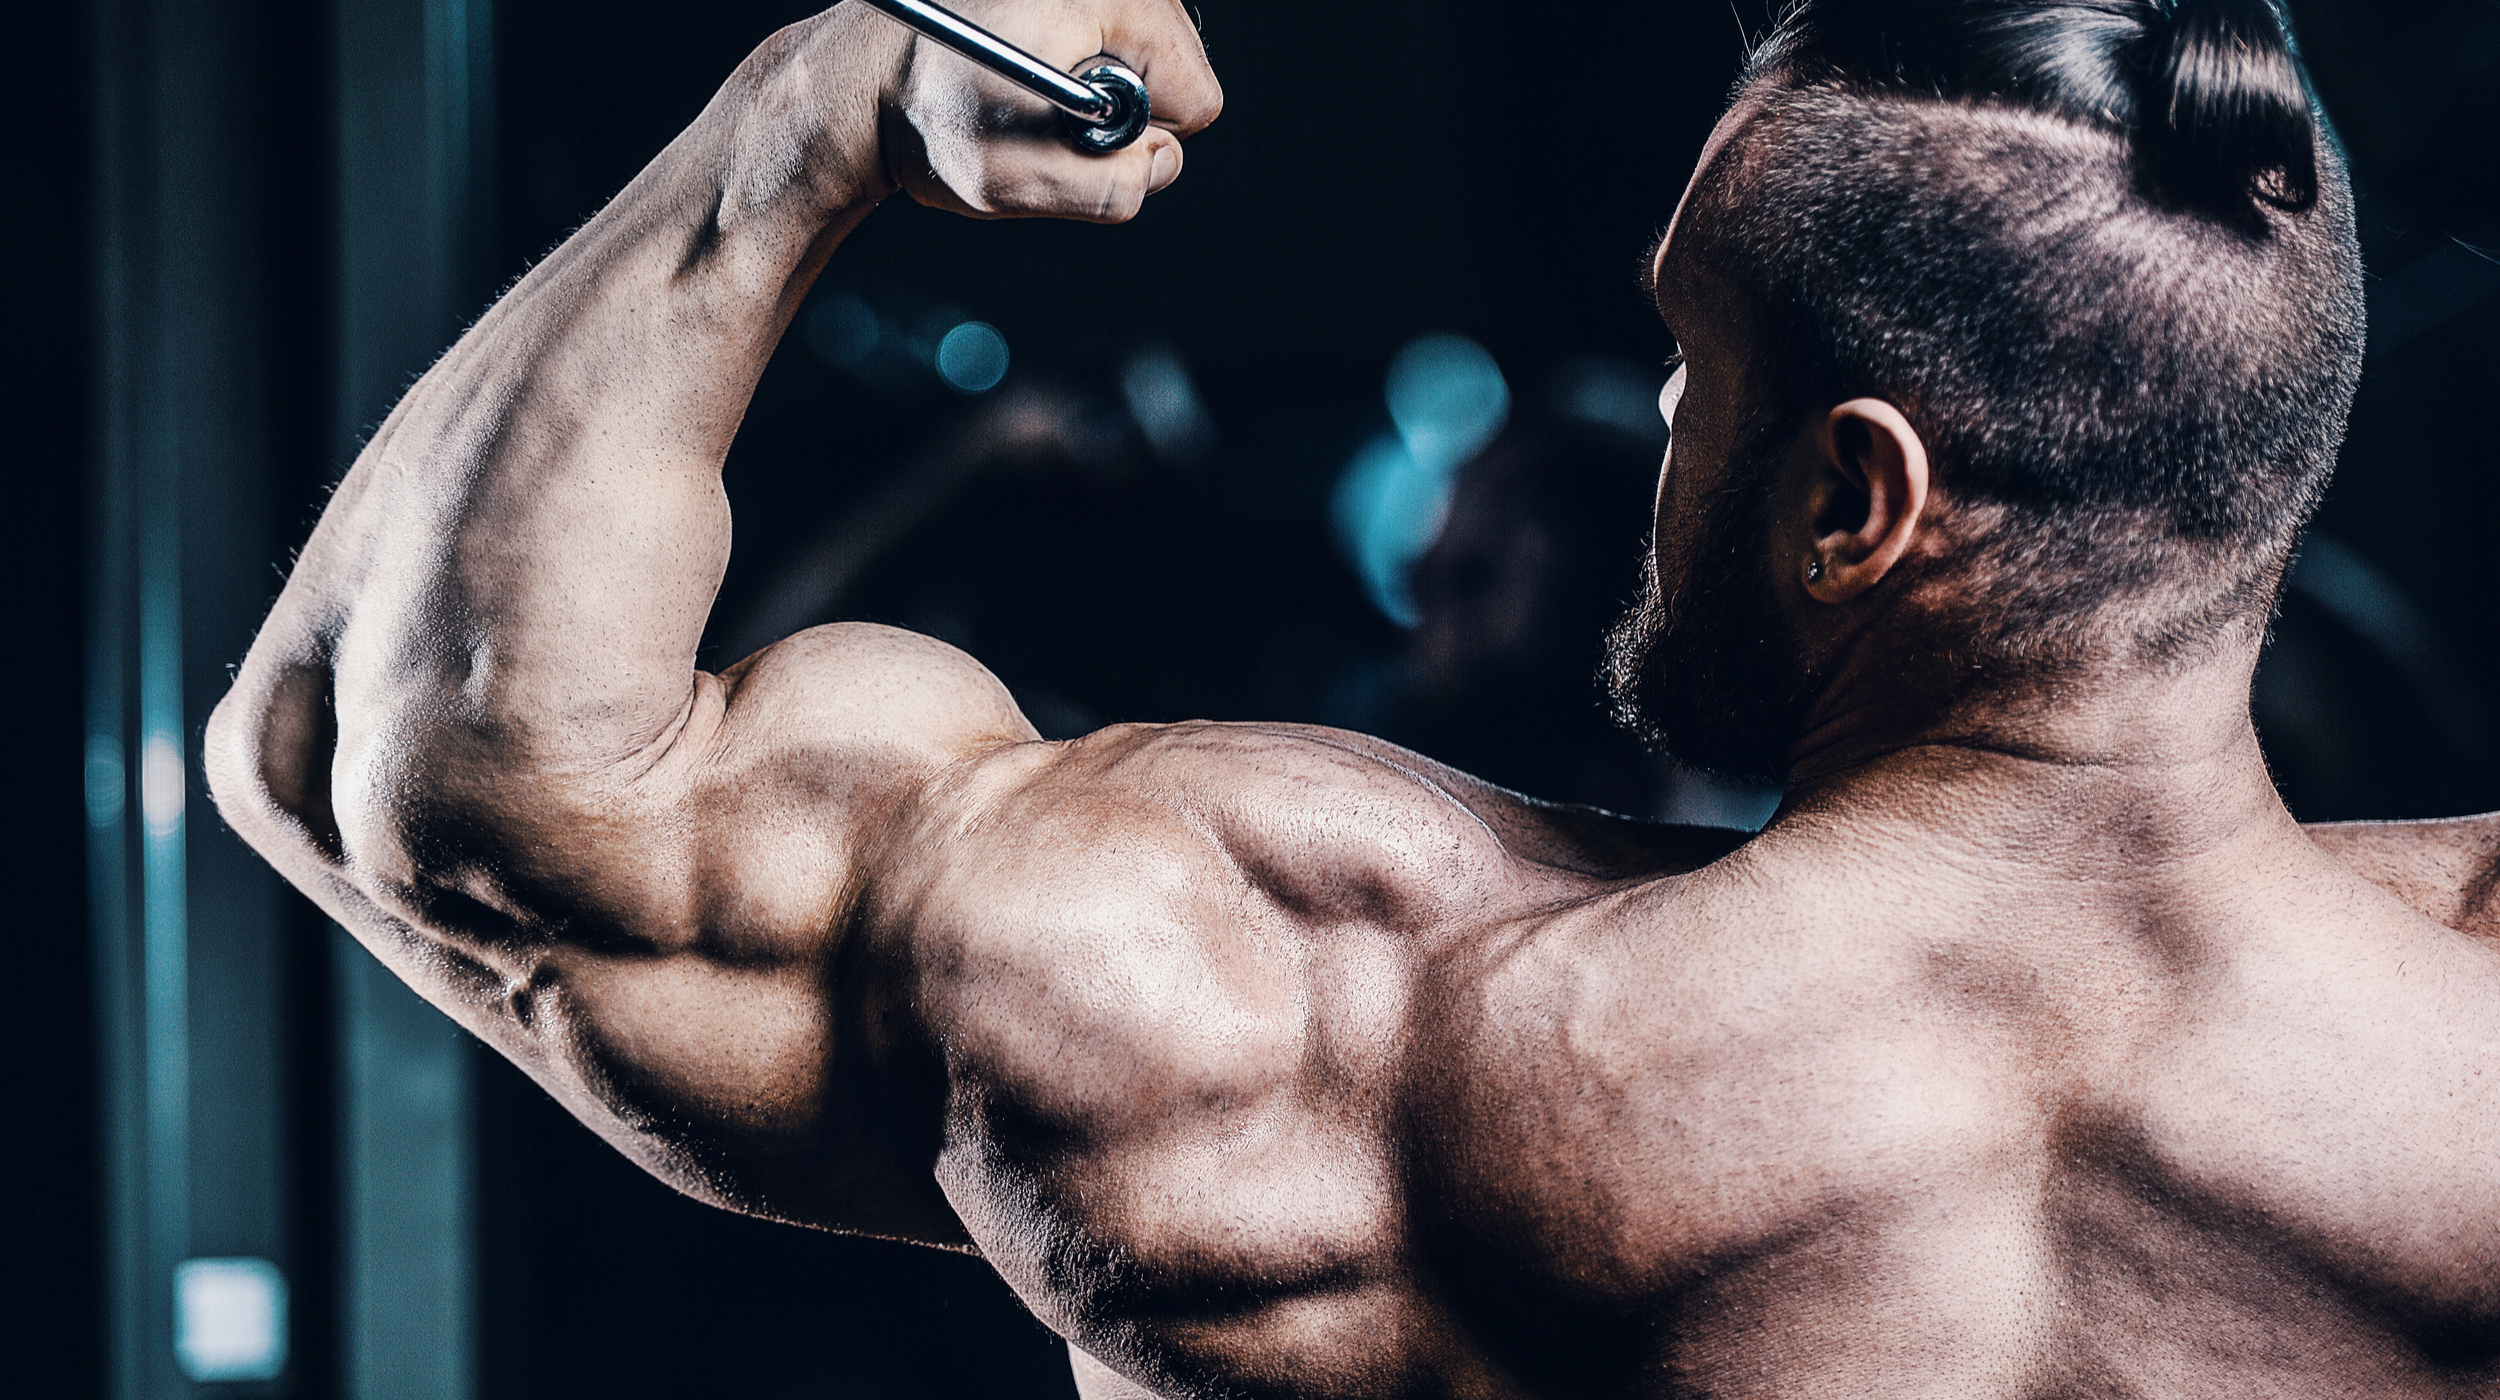 Top Exercises You Should Do If You Want Big Arms